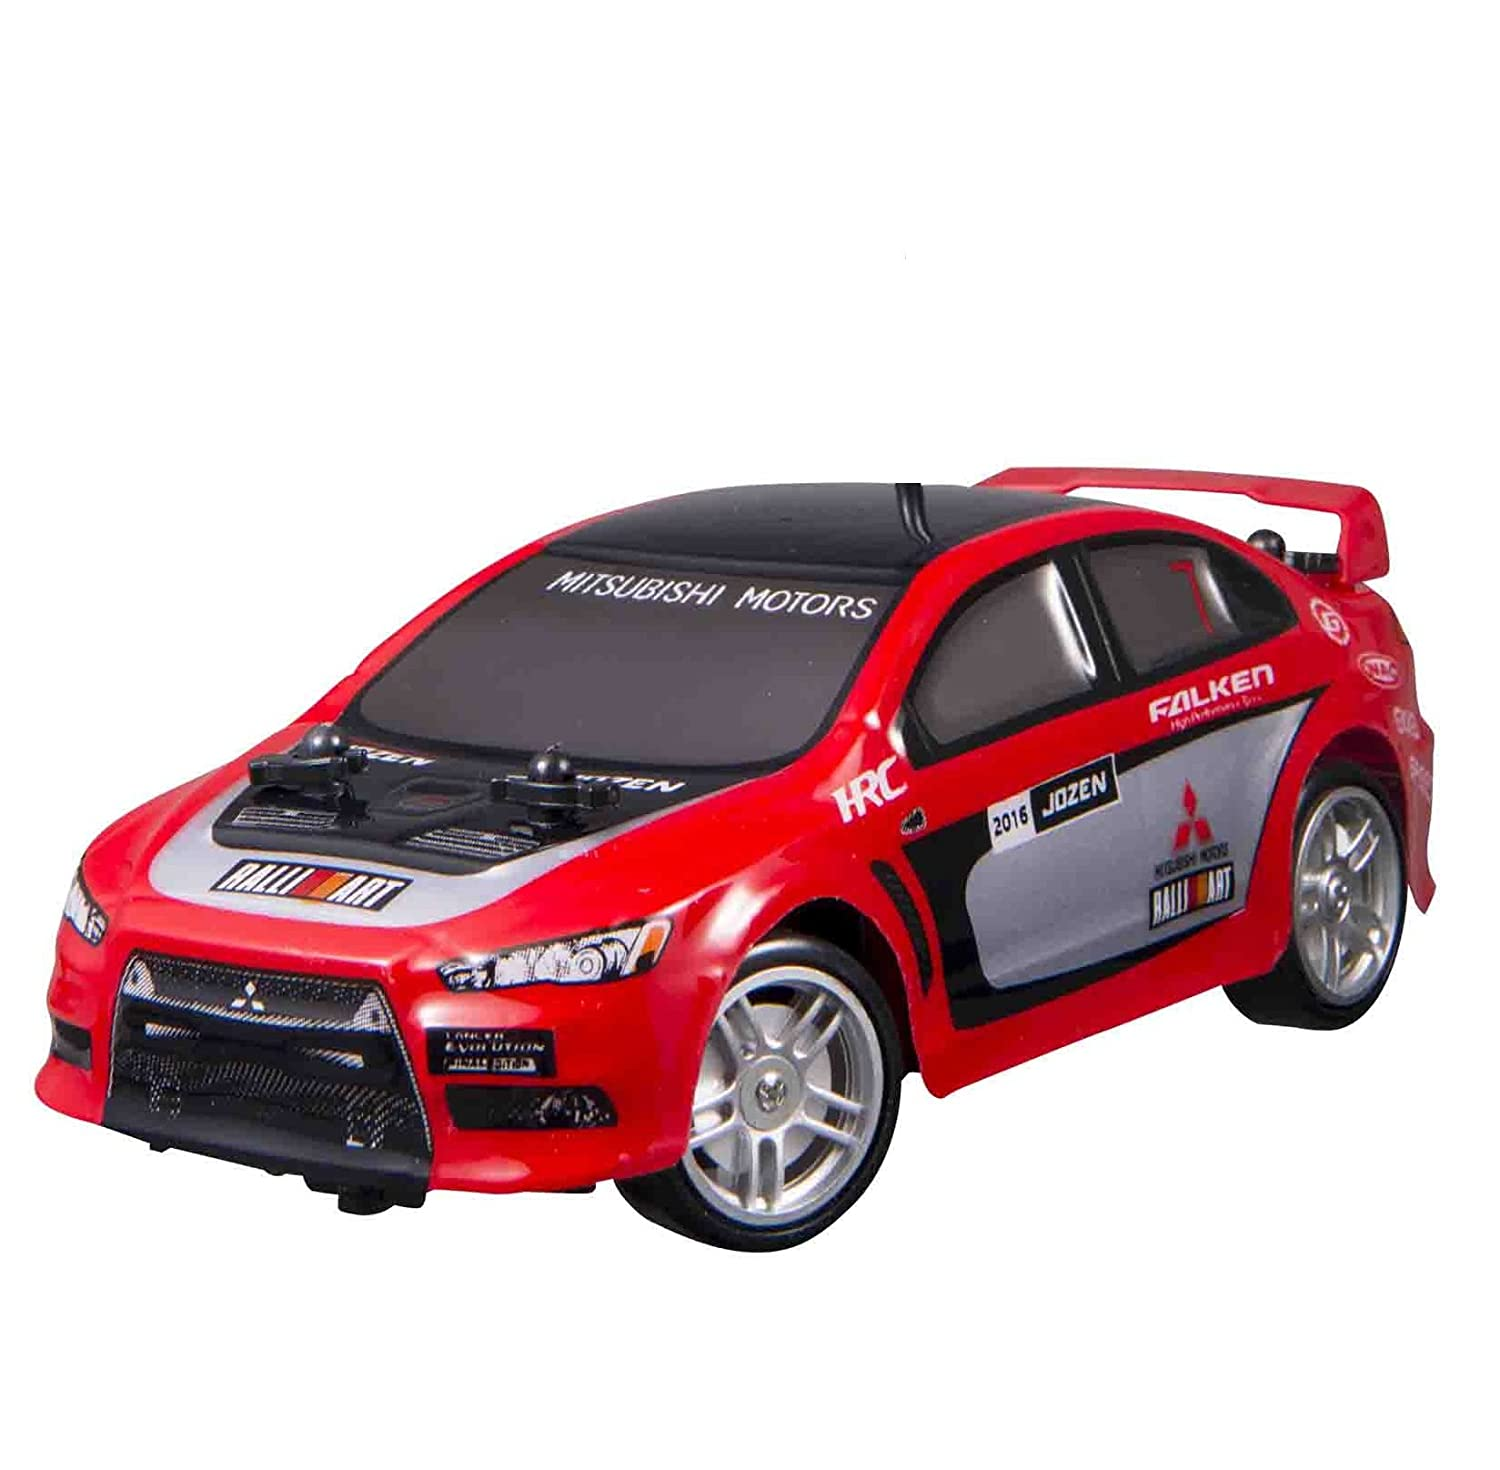 jozen jozen dart max 1 2 4 drift car rc mitsubishi. Black Bedroom Furniture Sets. Home Design Ideas